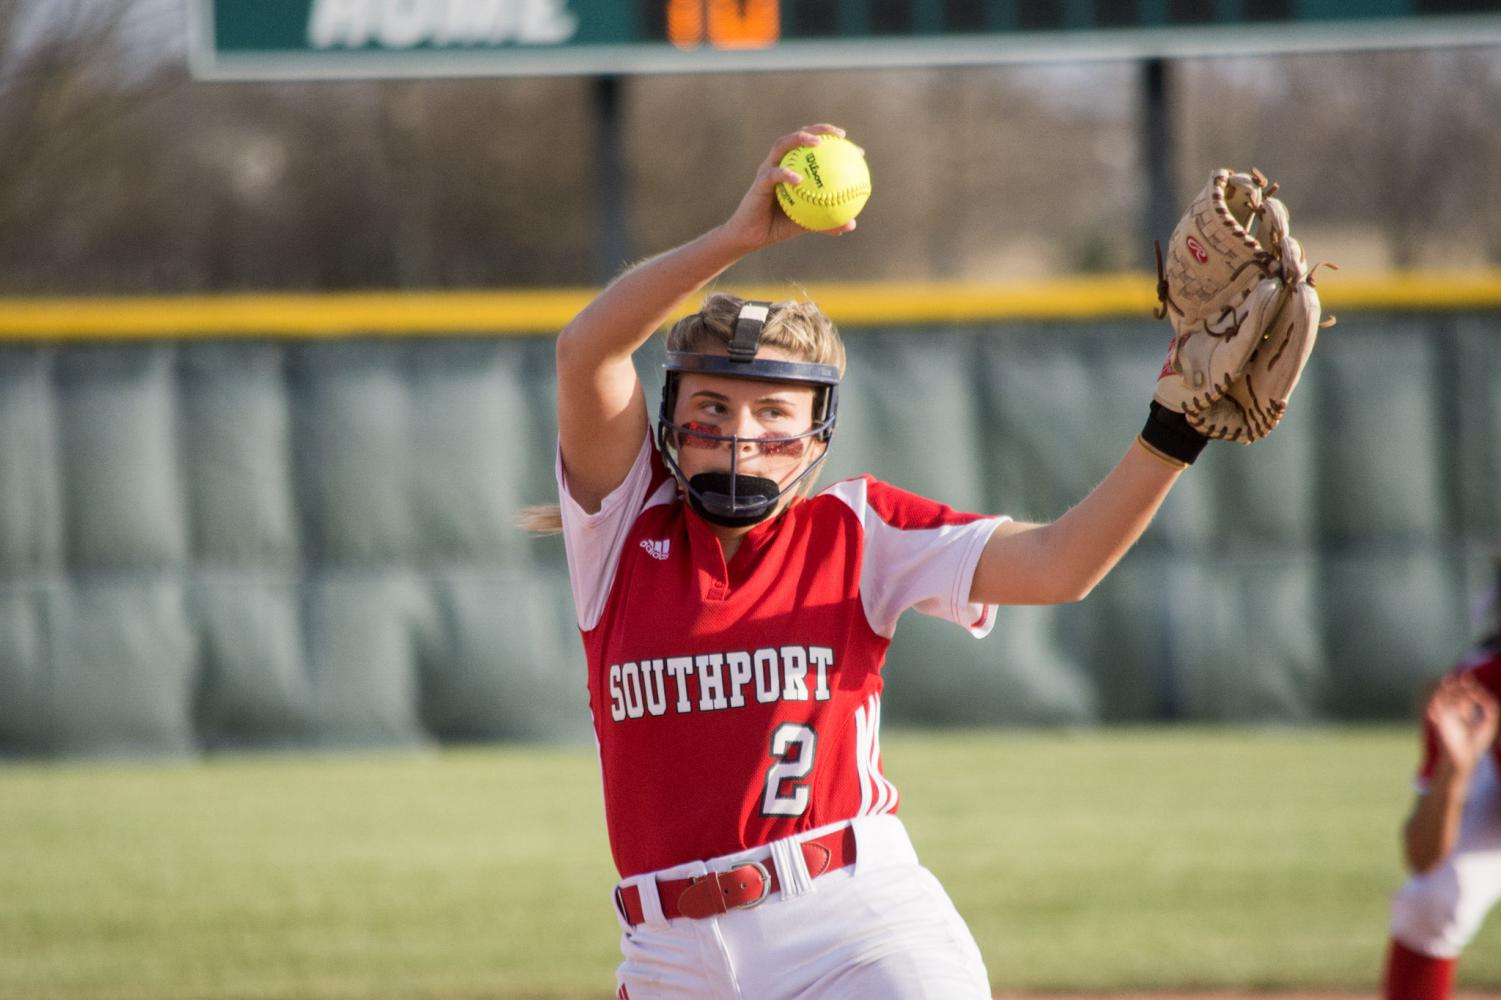 Senior Abby Pendleton pitches the ball during the game against Perry Meridian on Thursday, April 12.  SHS won the game 8-2